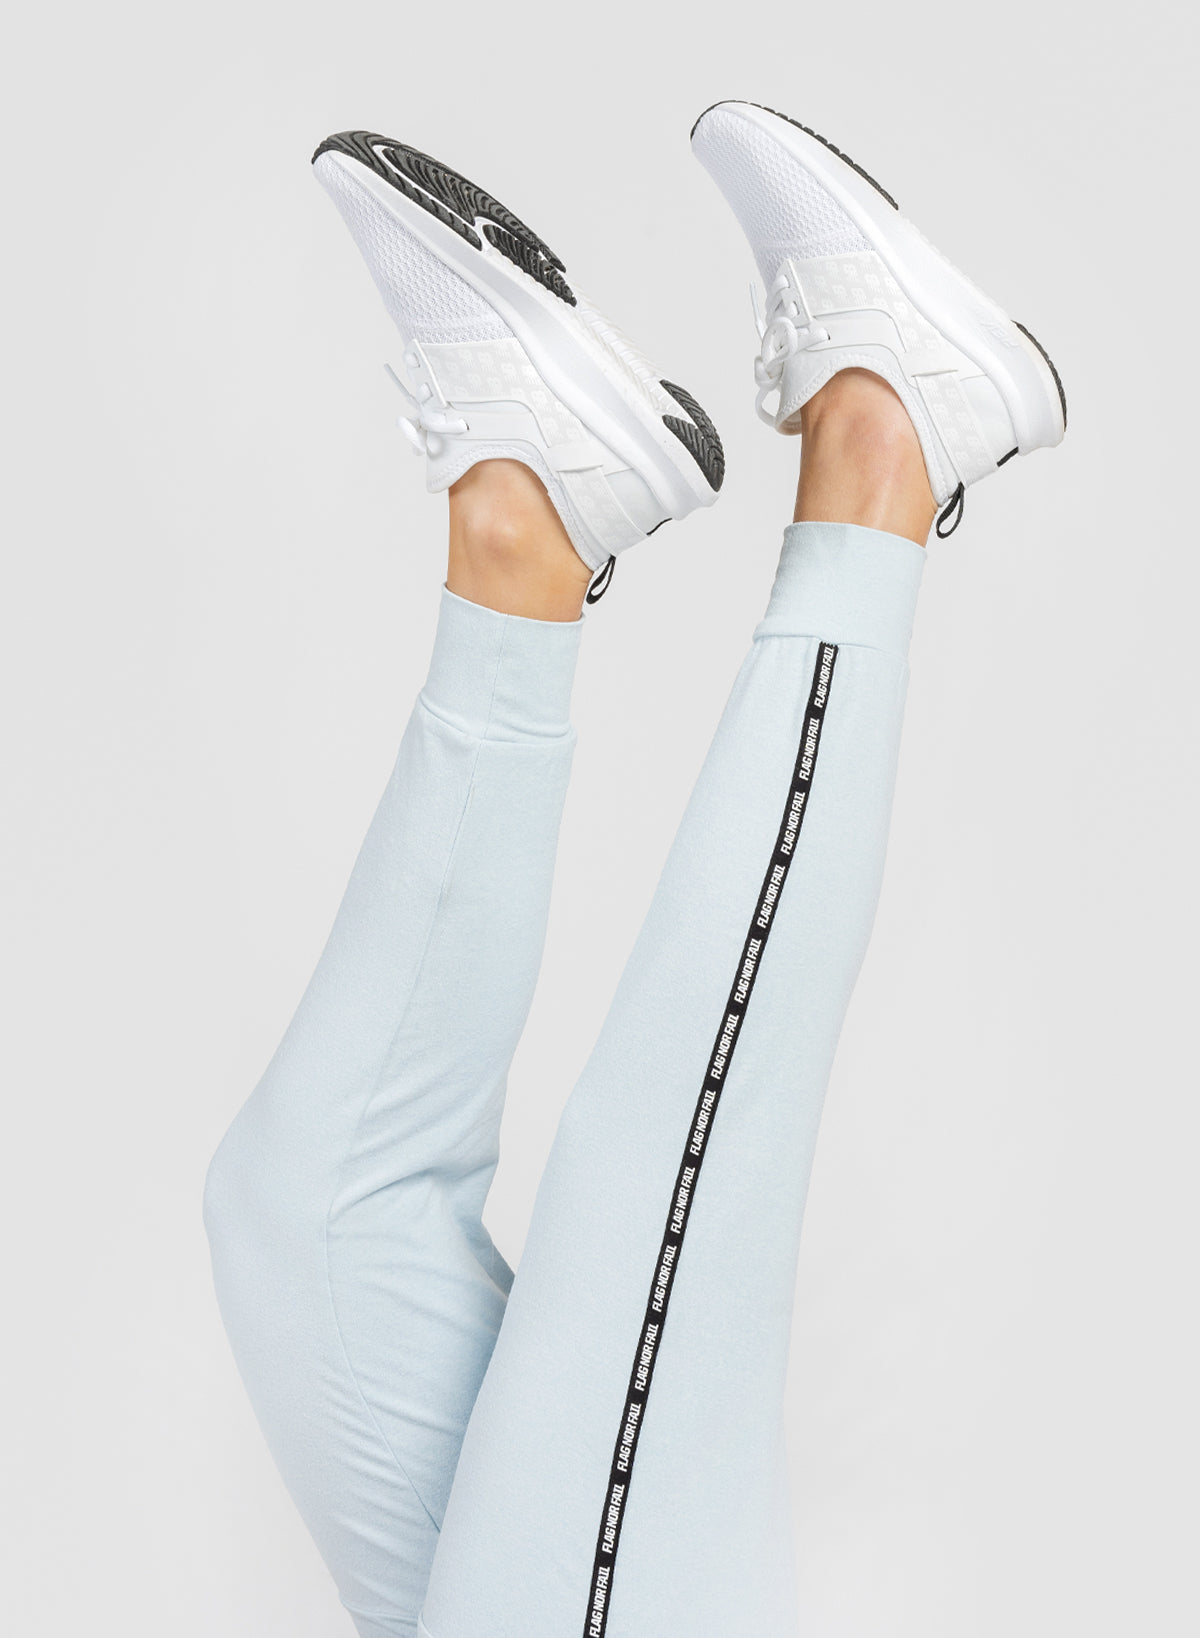 WOMEN'S JOGGER - BABY BLUE